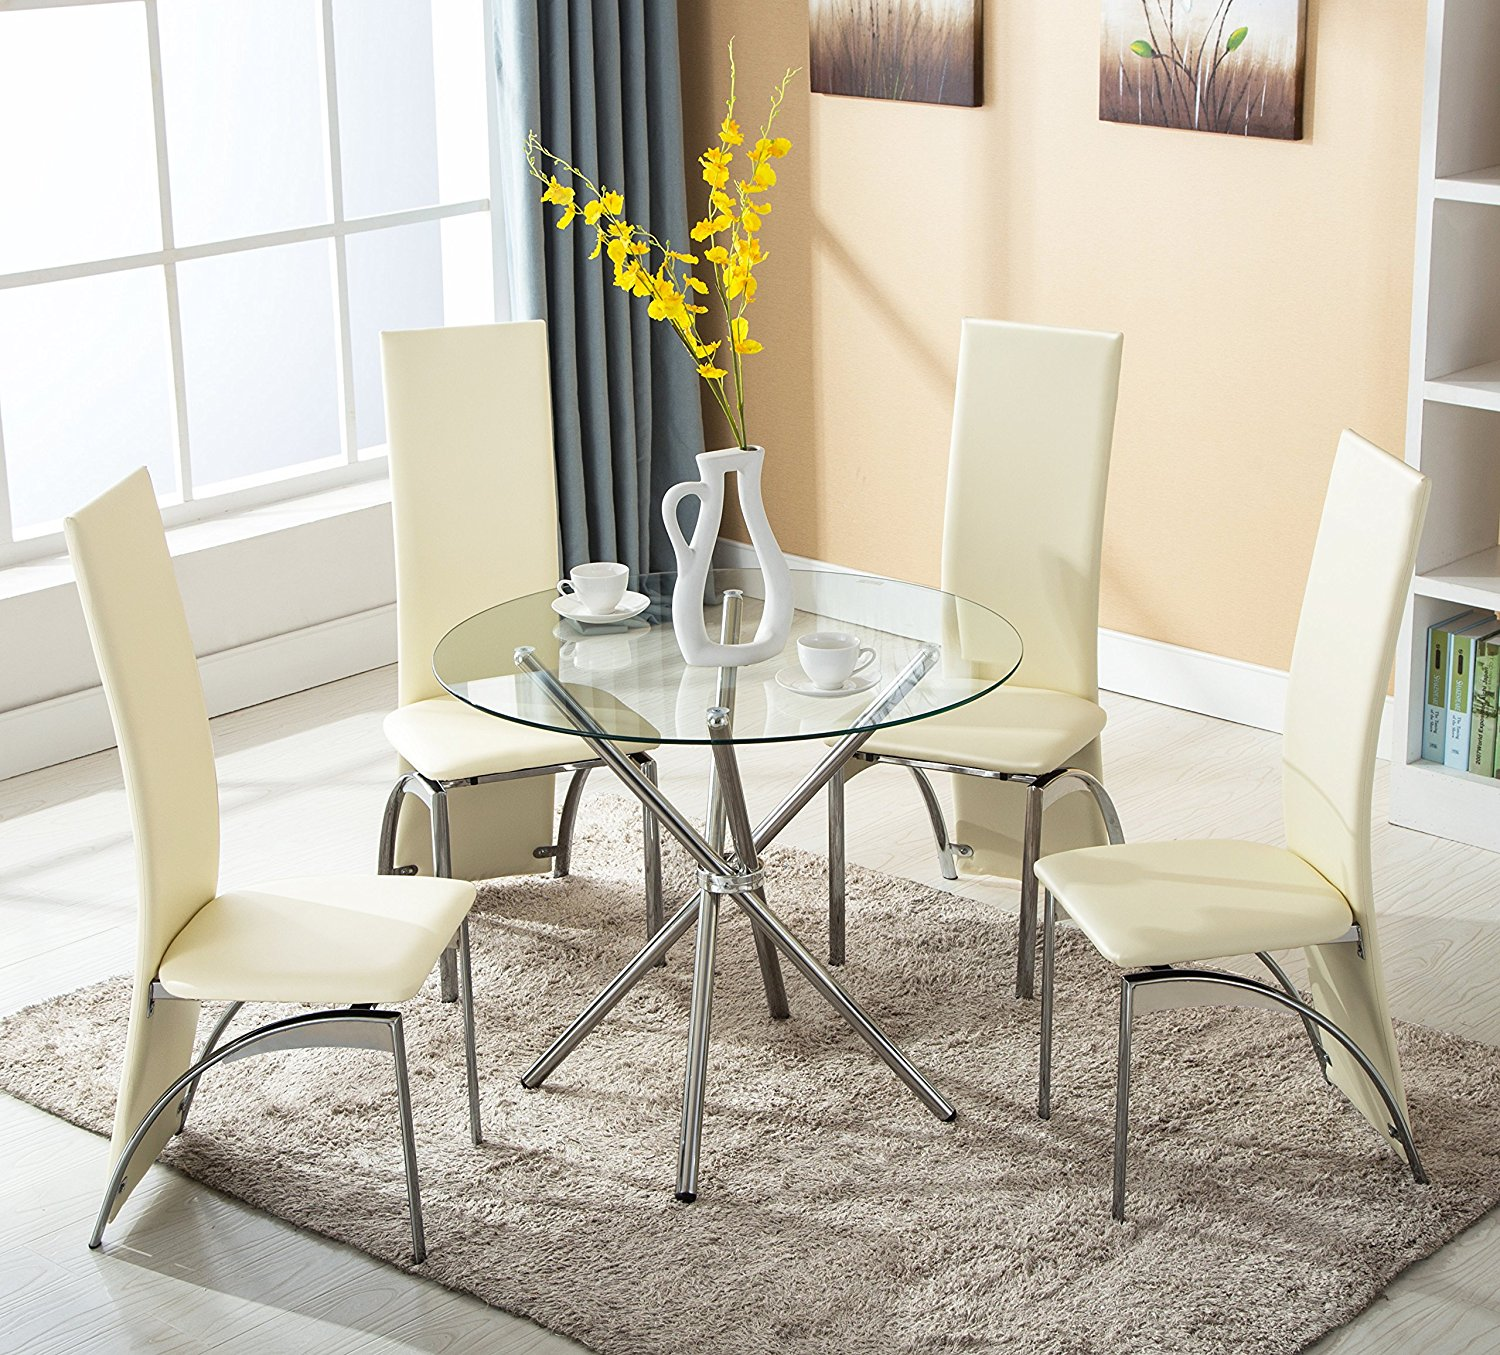 Elegant Dining Table Chairs Set – Kims Warehouse